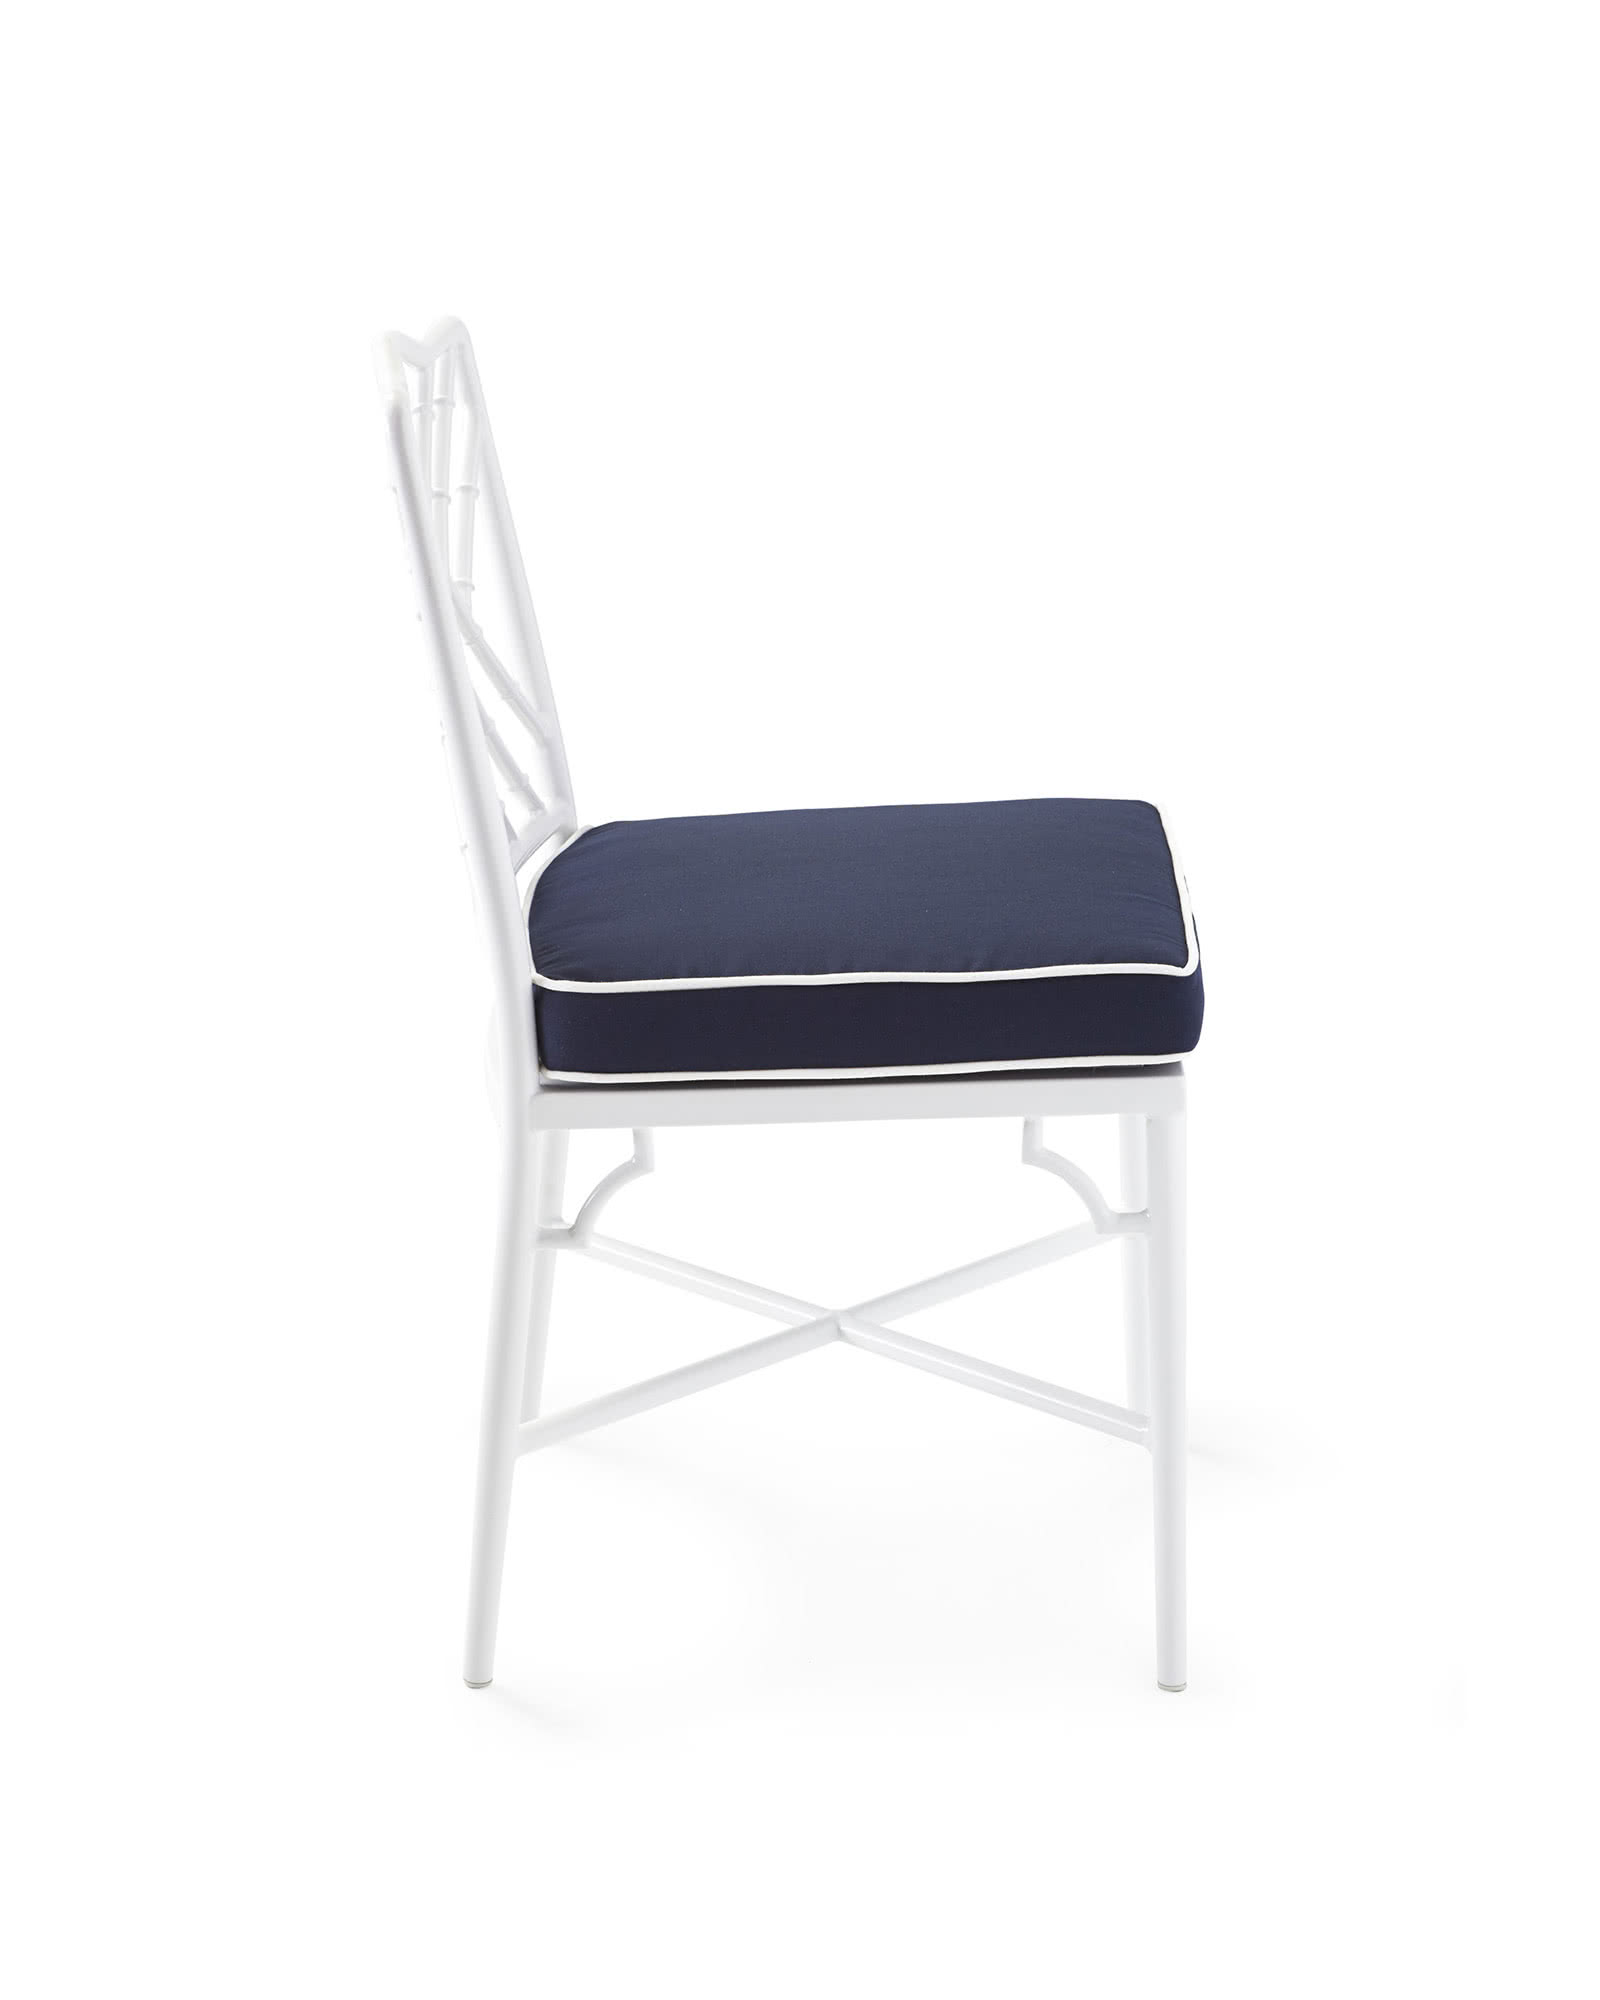 Chatham Outdoor Side Chair